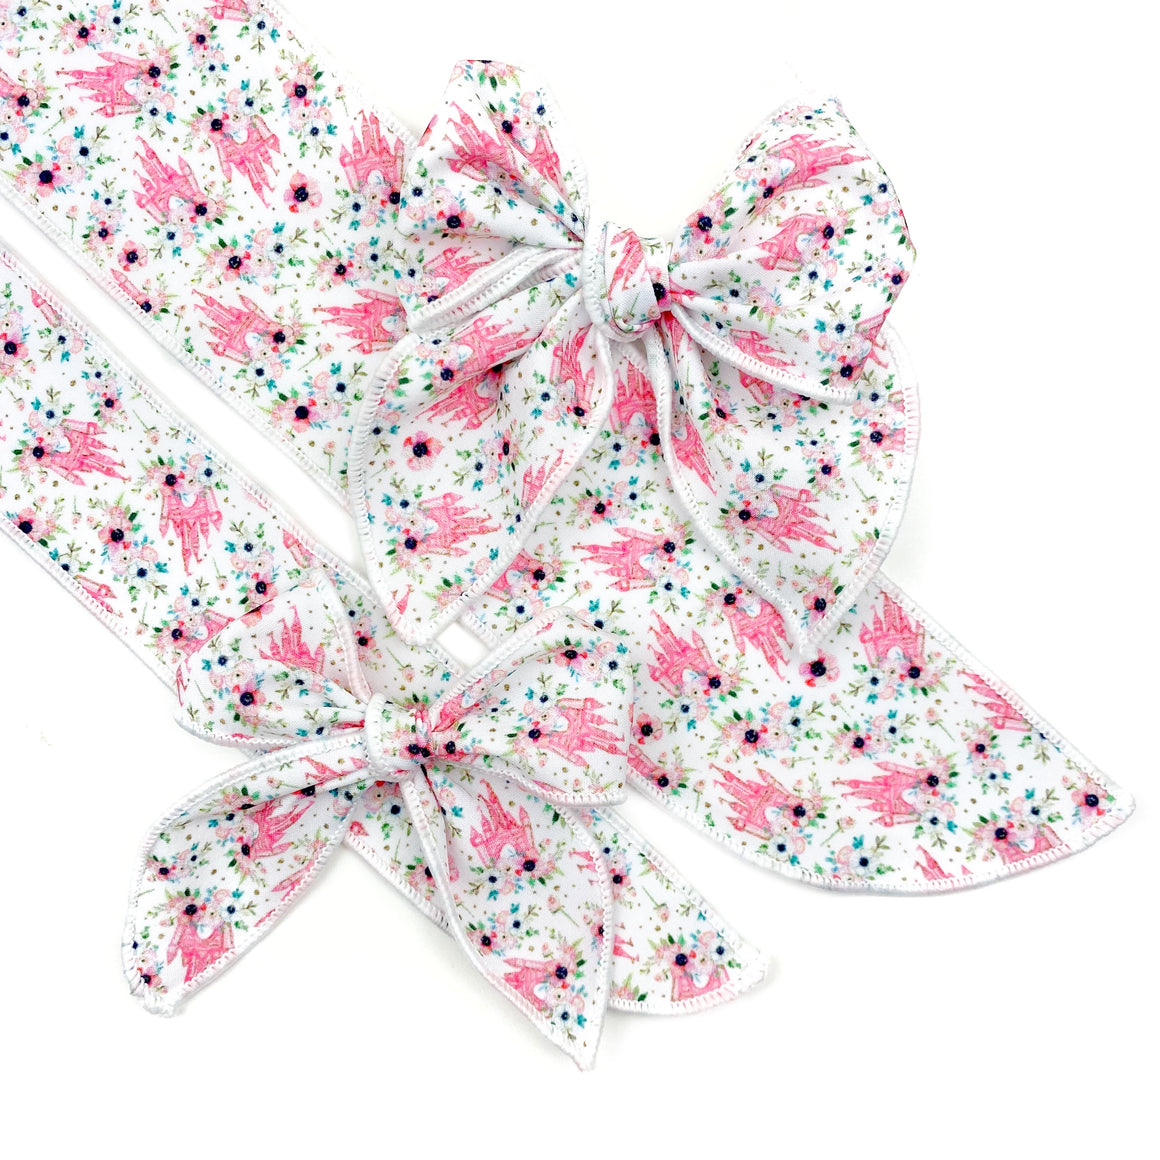 Fairytale Floral JB Effortless Bow Strips - Serged Edge